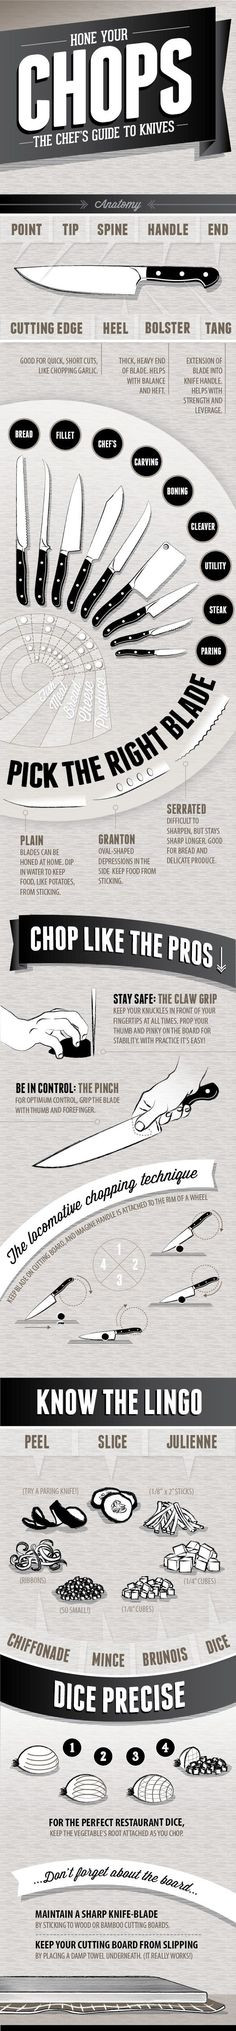 Cut it In the Kitchen by Shannon Lattin #Infographic #Knife_Skills